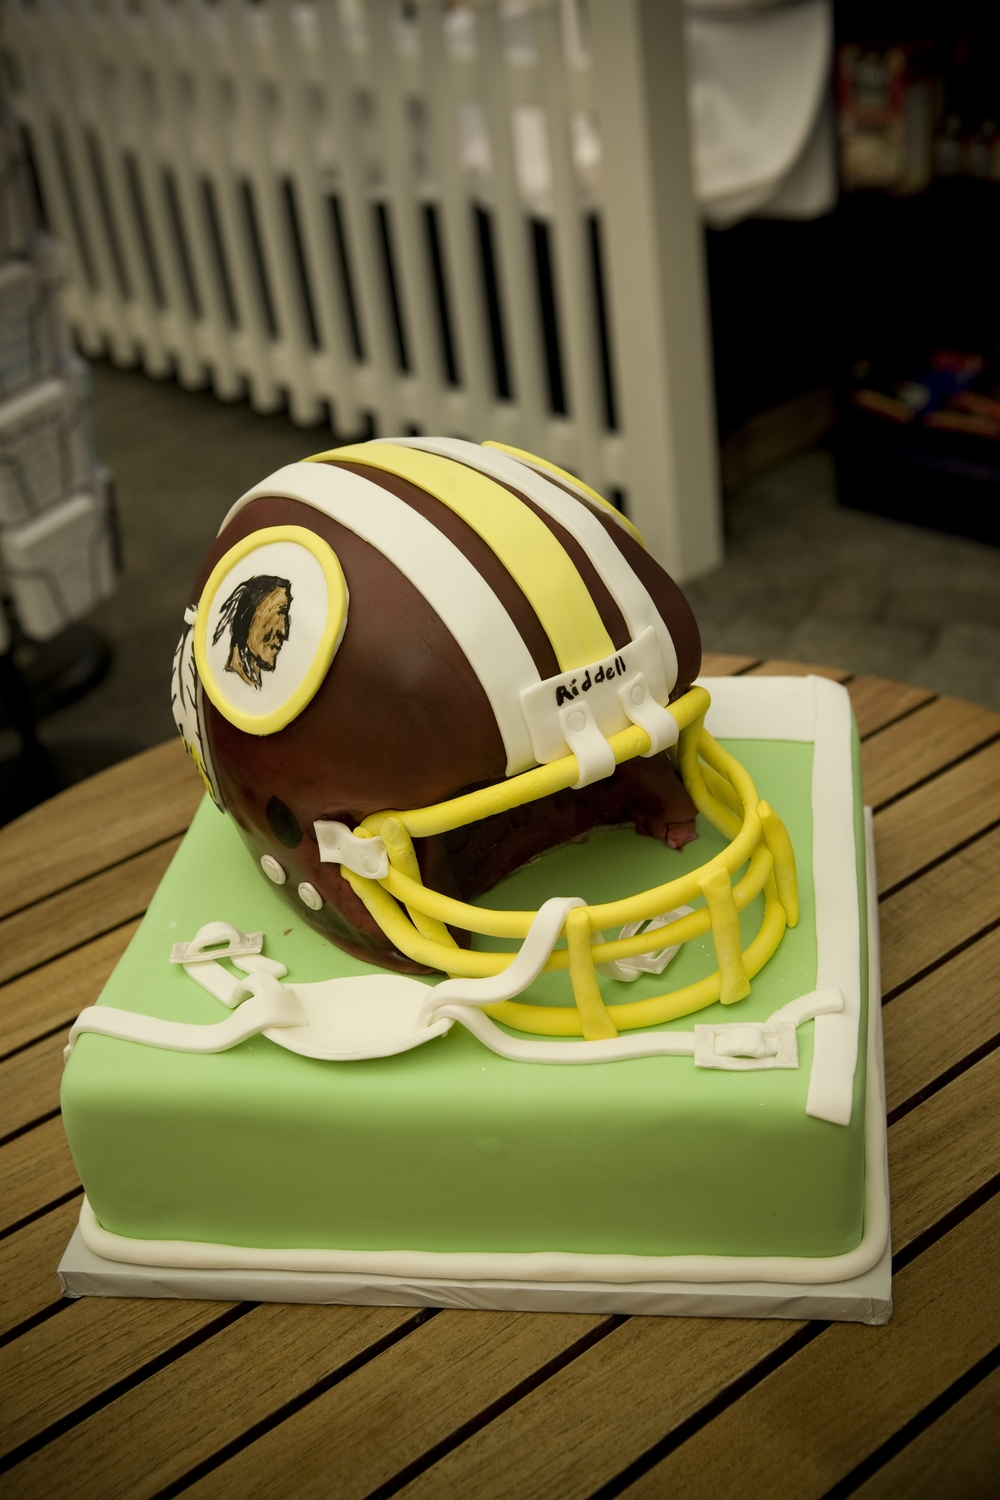 snake cake - a gallery on Flickr